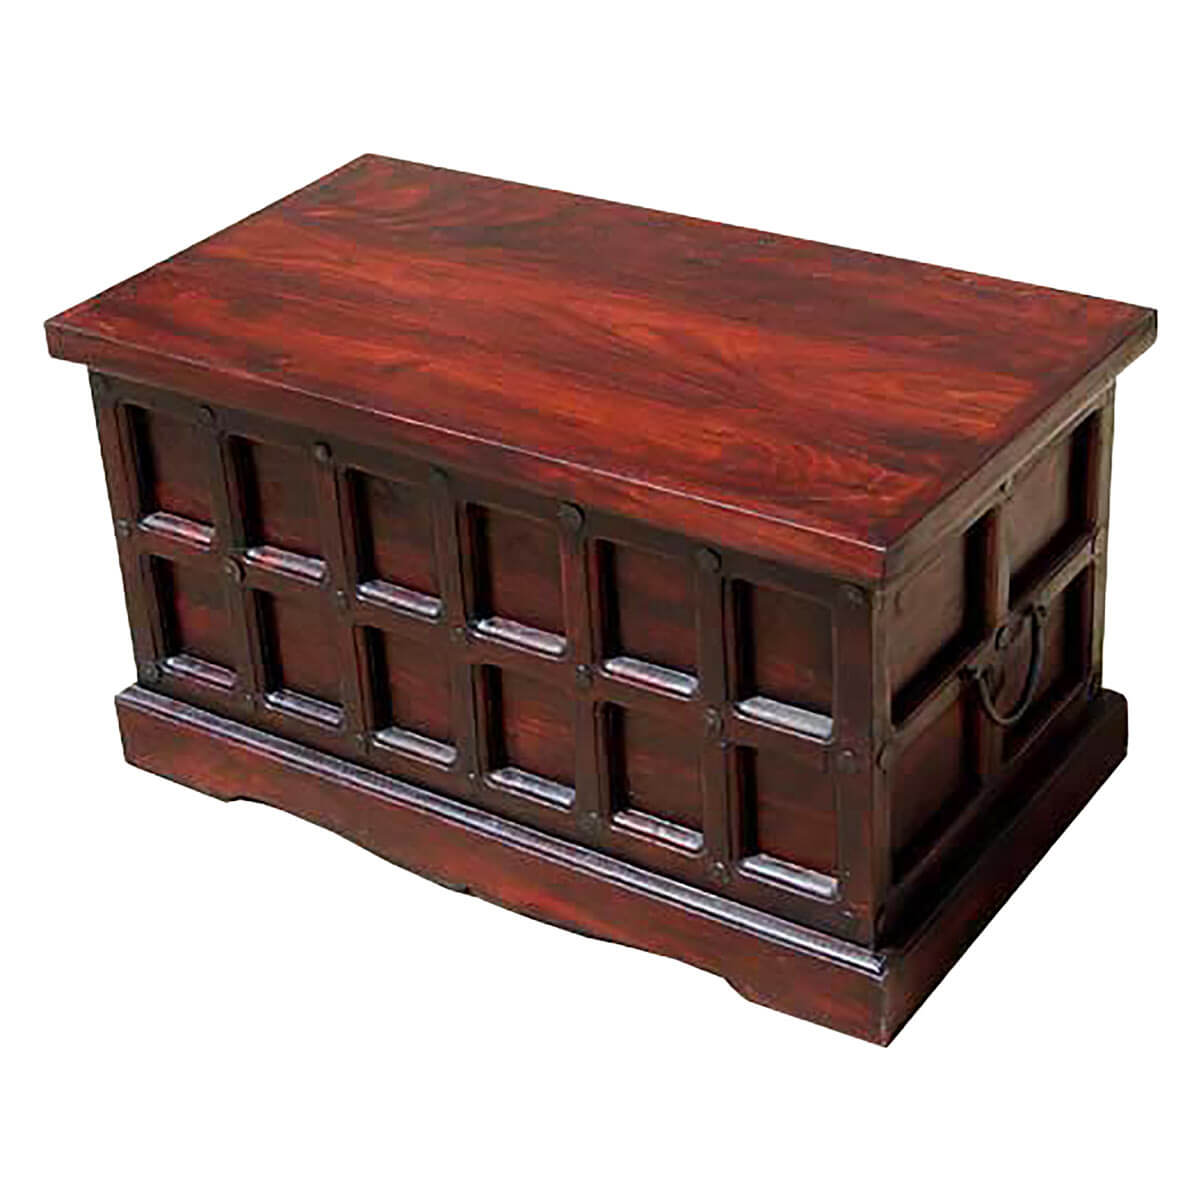 Beaufort solid wood storage chest trunk box coffee table Coffee table chest with storage